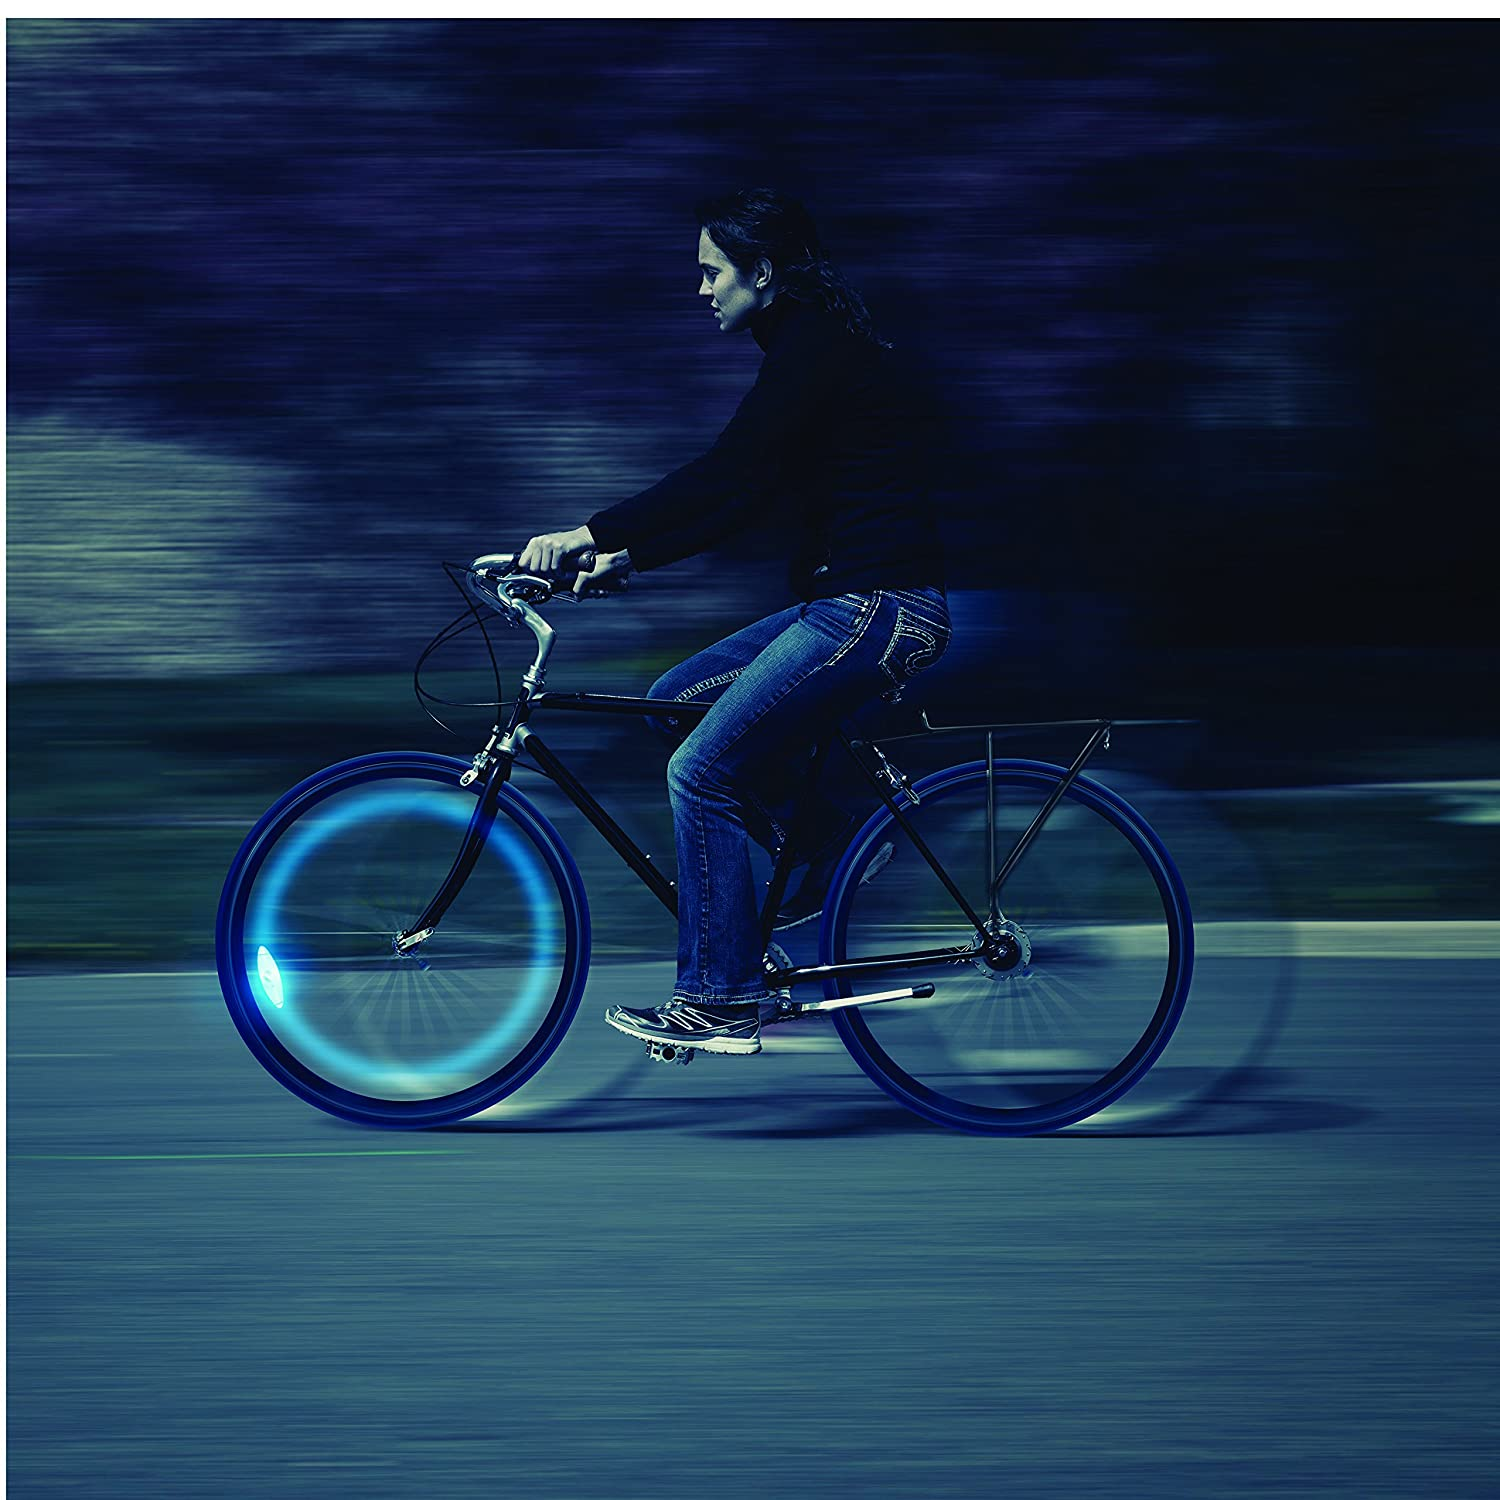 Nite Ize Spokelit Led Bicycle Spoke Light For Bike Wiring Switch Common Including How To Wire A Two Way Ehow Wheels Blue Headlights Sports Outdoors